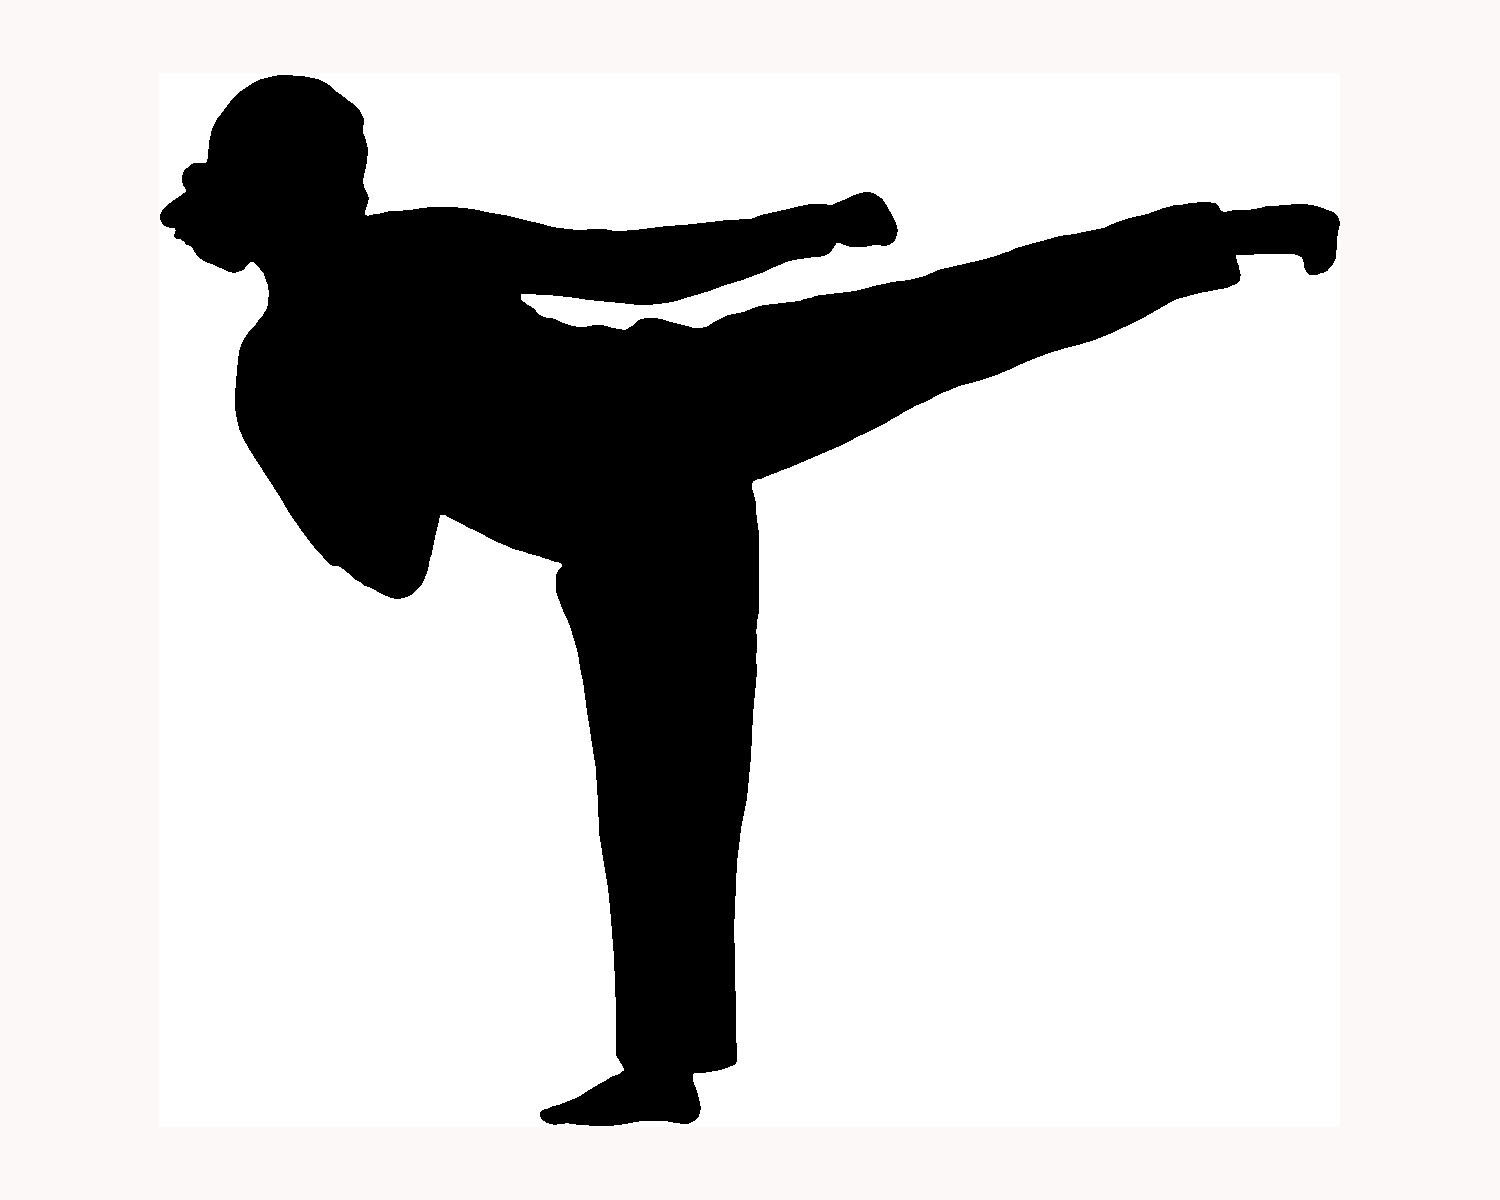 Karate kick clipart svg black and white download Free Karate Silhouette Cliparts, Download Free Clip Art ... svg black and white download